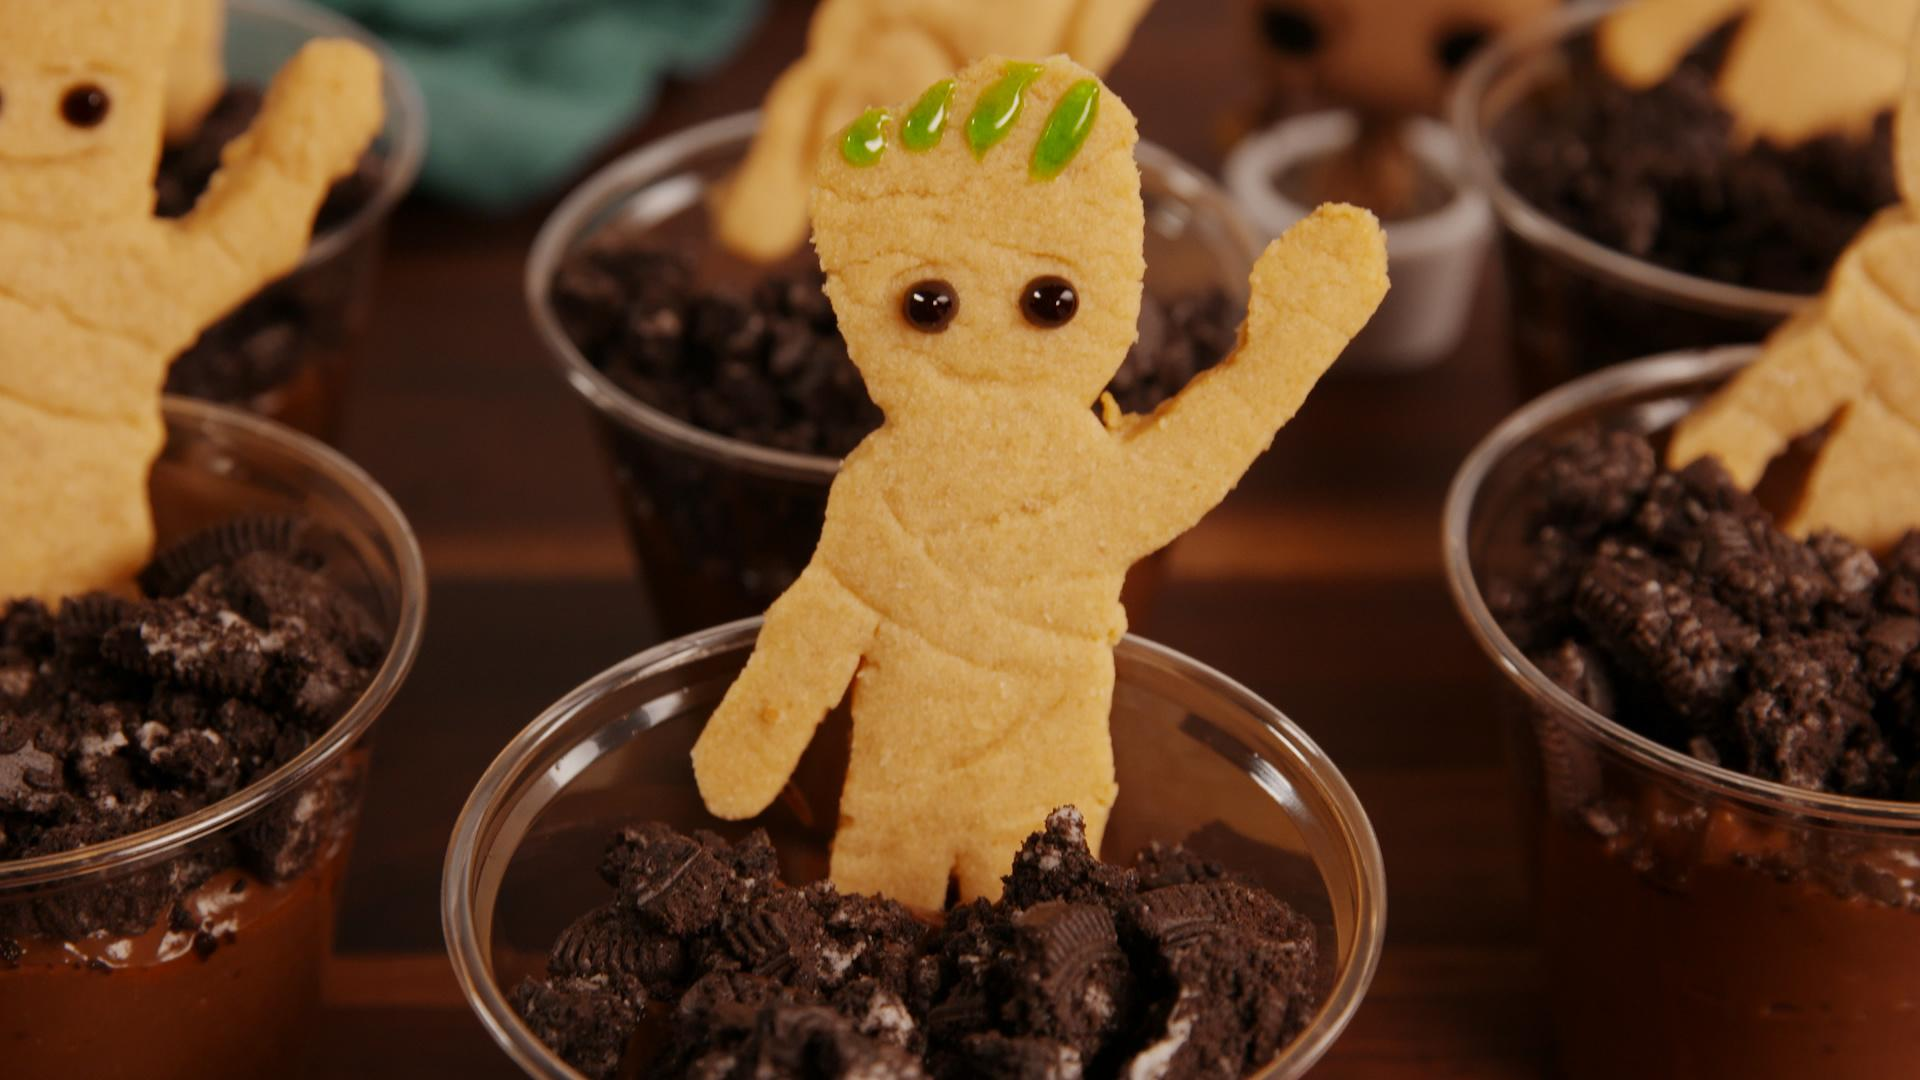 These Groot Galaxy Cups Are So Addictive You'll Want to Sneak Them Into the Theater